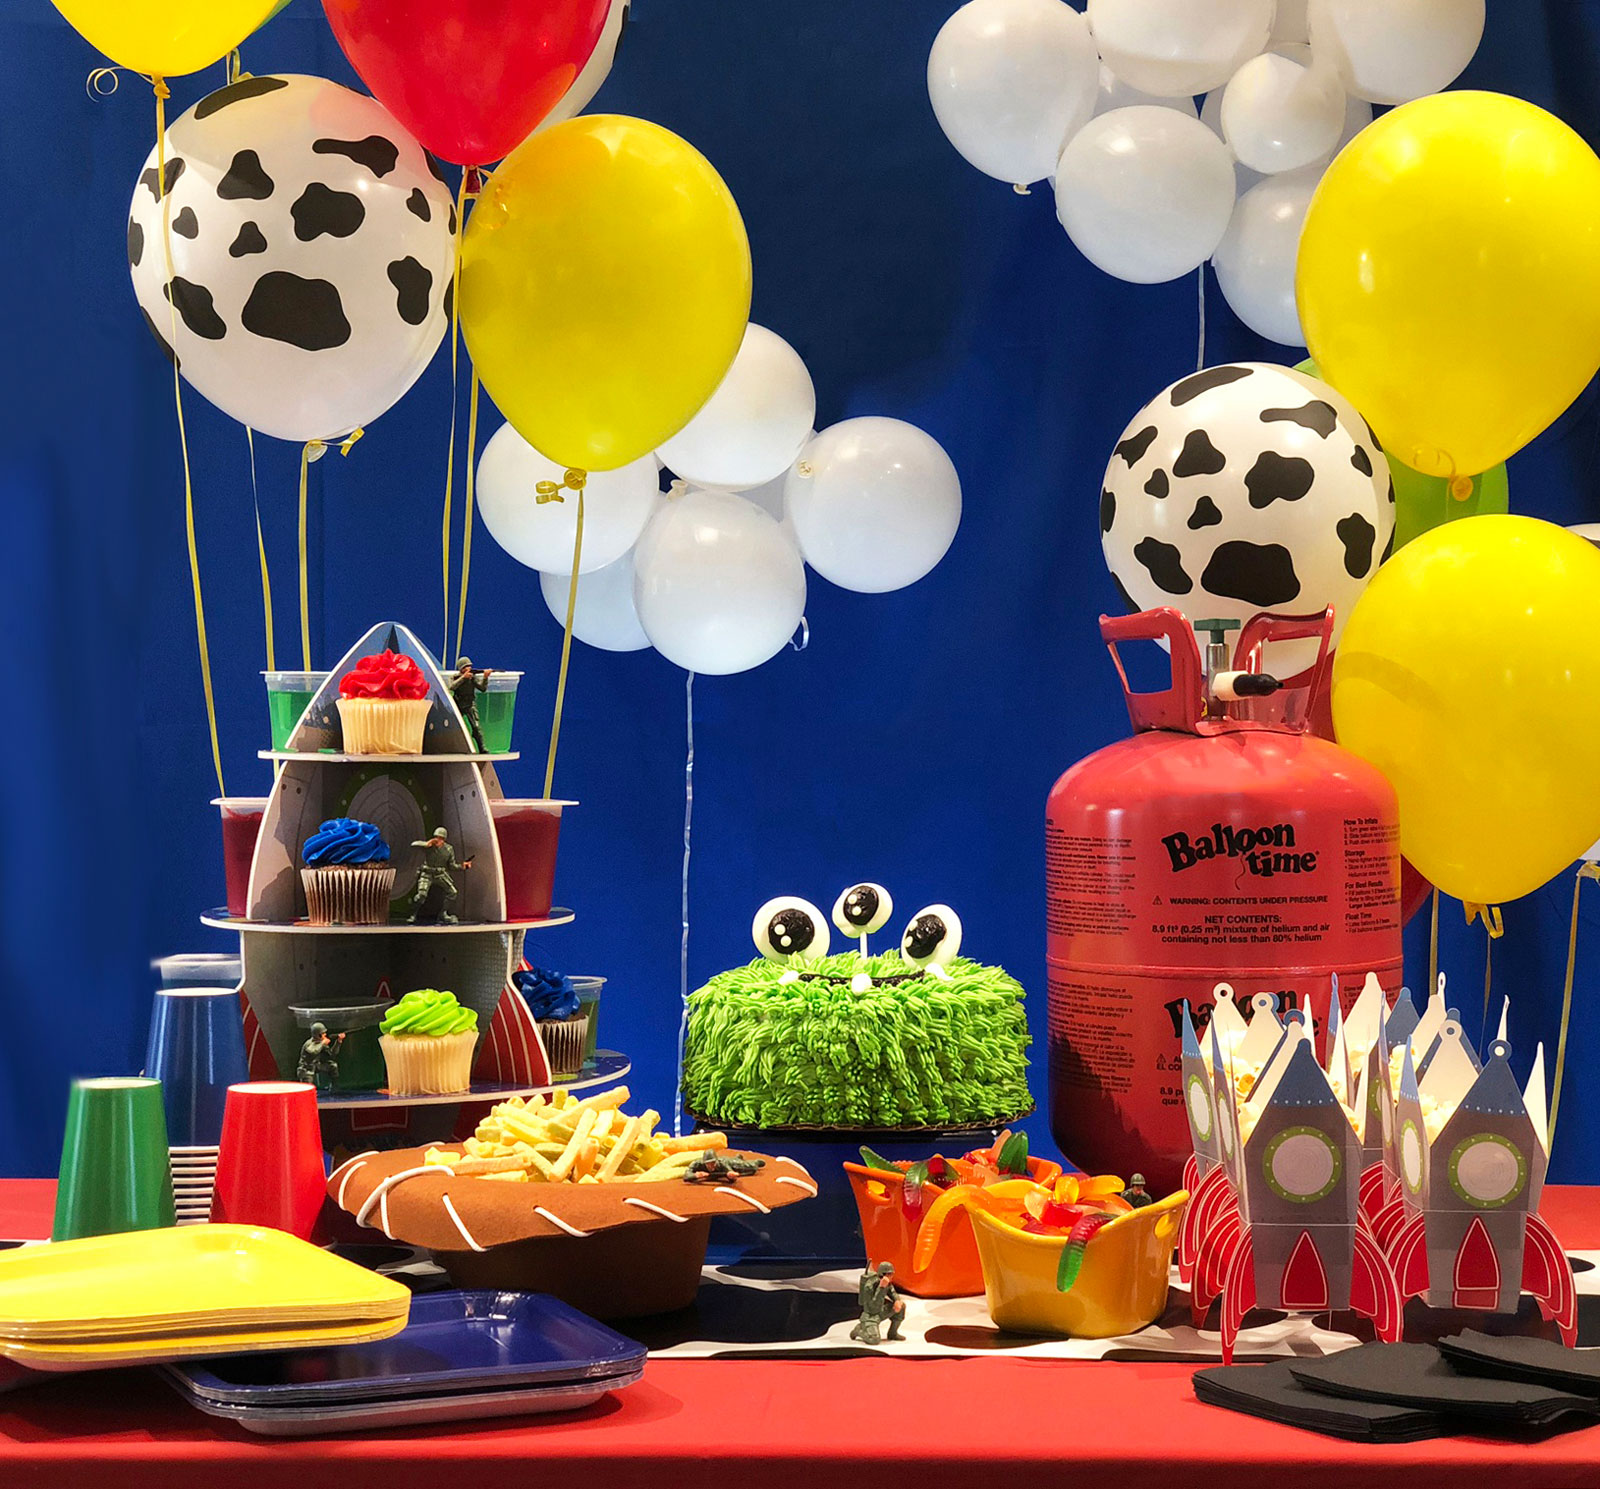 Birthday party decoration for young boy